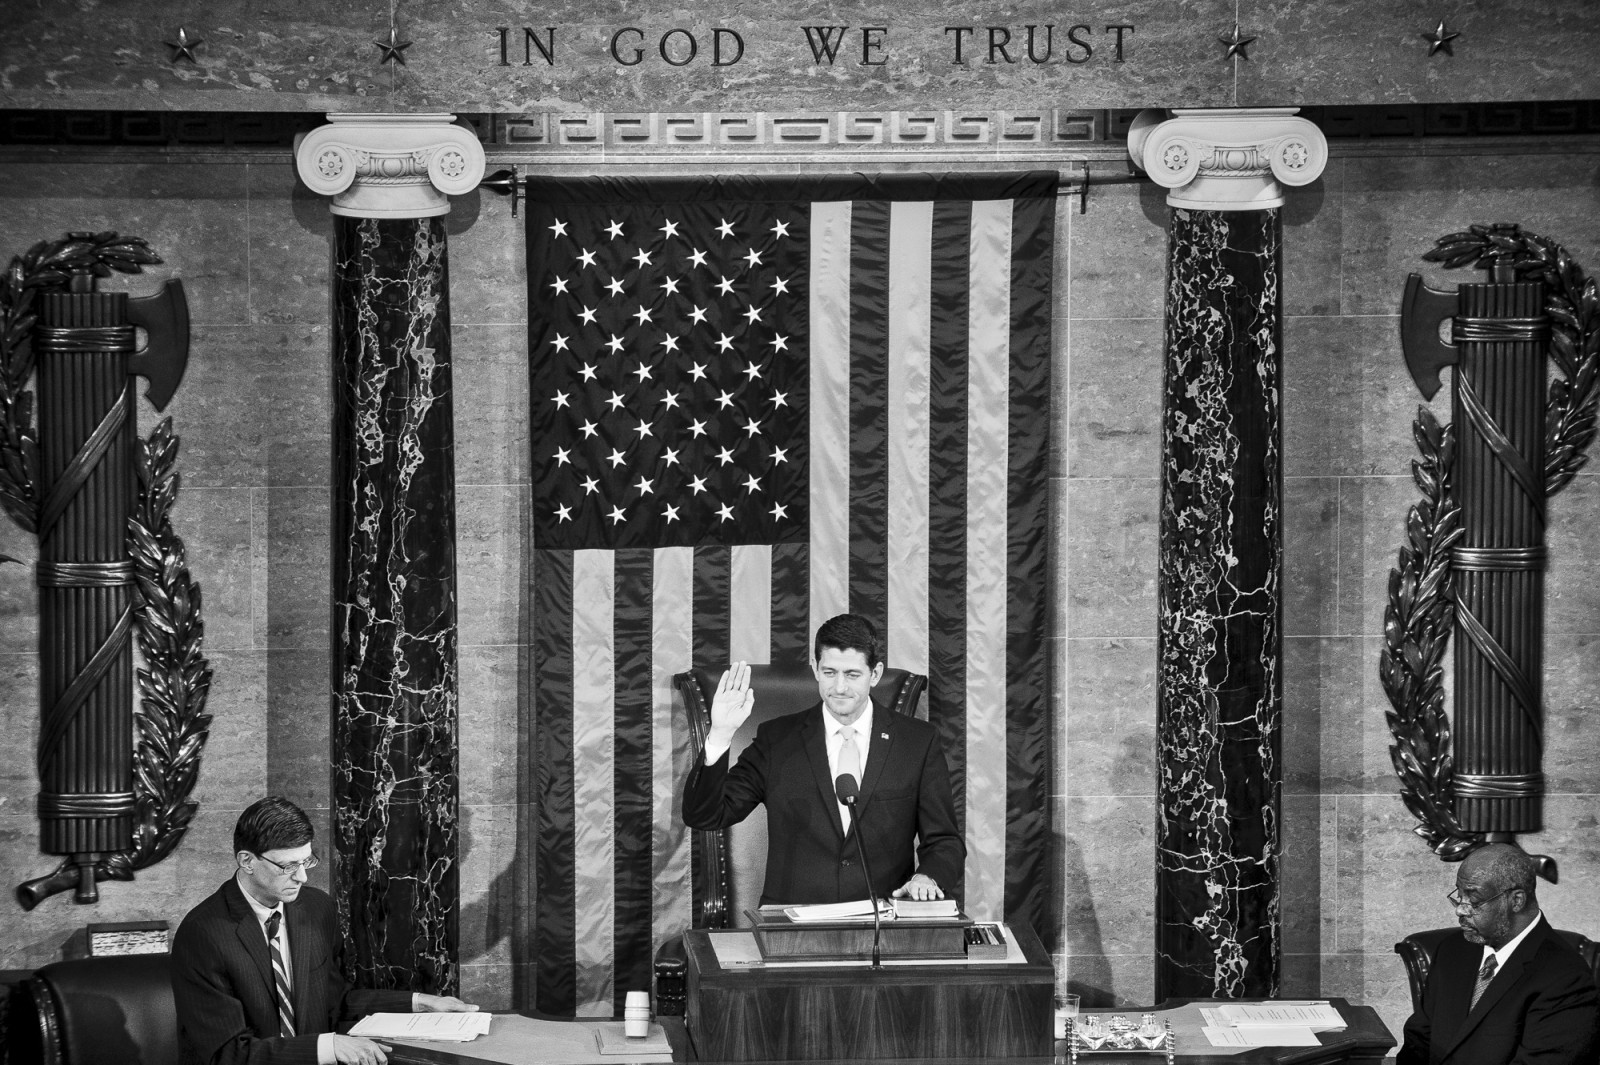 Speaker of the House Paul Ryan (R-WI) is sworn in after being elected Speaker of the House of Representatives on October 29, 2015 in Washington, D.C. Earlier the outgoing Speaker, Rep. John Boehner (R-OH), gave his farewell address to Congress. He is retiring on October 30, 2015. Photo by Pete Marovich/UPI